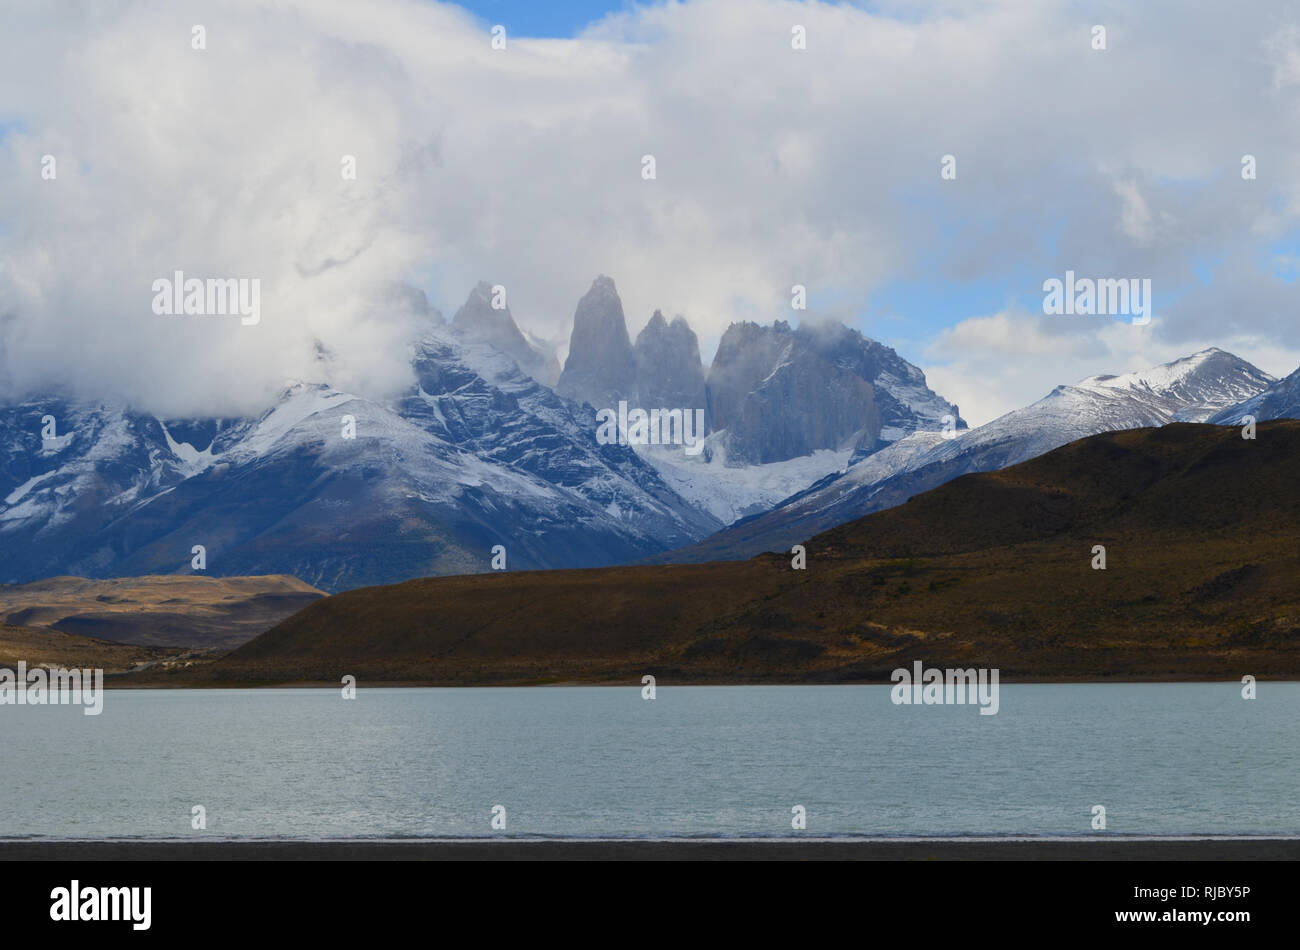 View over the Cuernos del Paine massif in Torres del Paine National Park, Chilean Patagonia - Stock Image